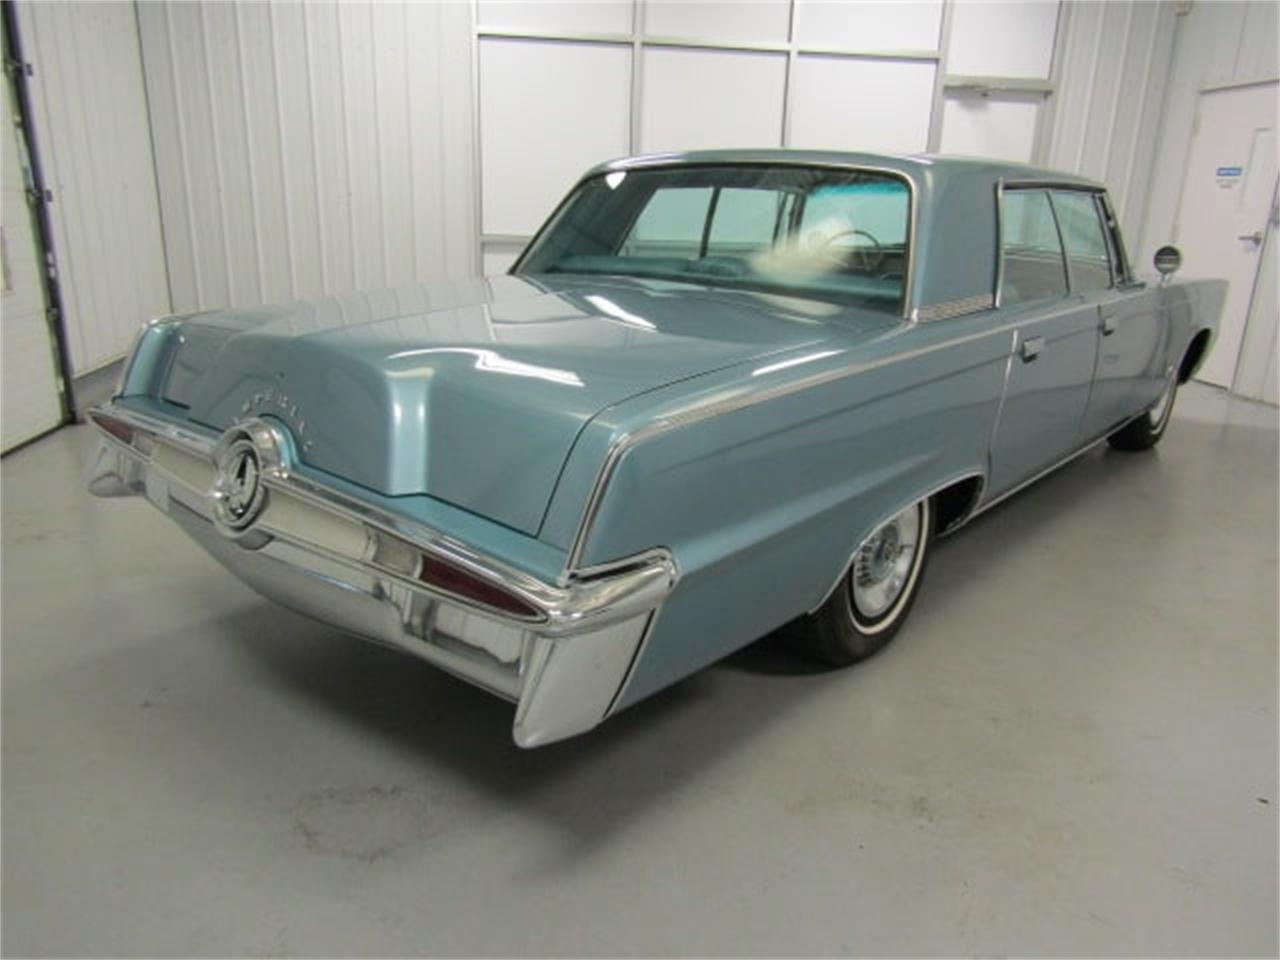 Large Picture of 1964 Chrysler Imperial - $21,970.00 Offered by Duncan Imports & Classic Cars - JLDR